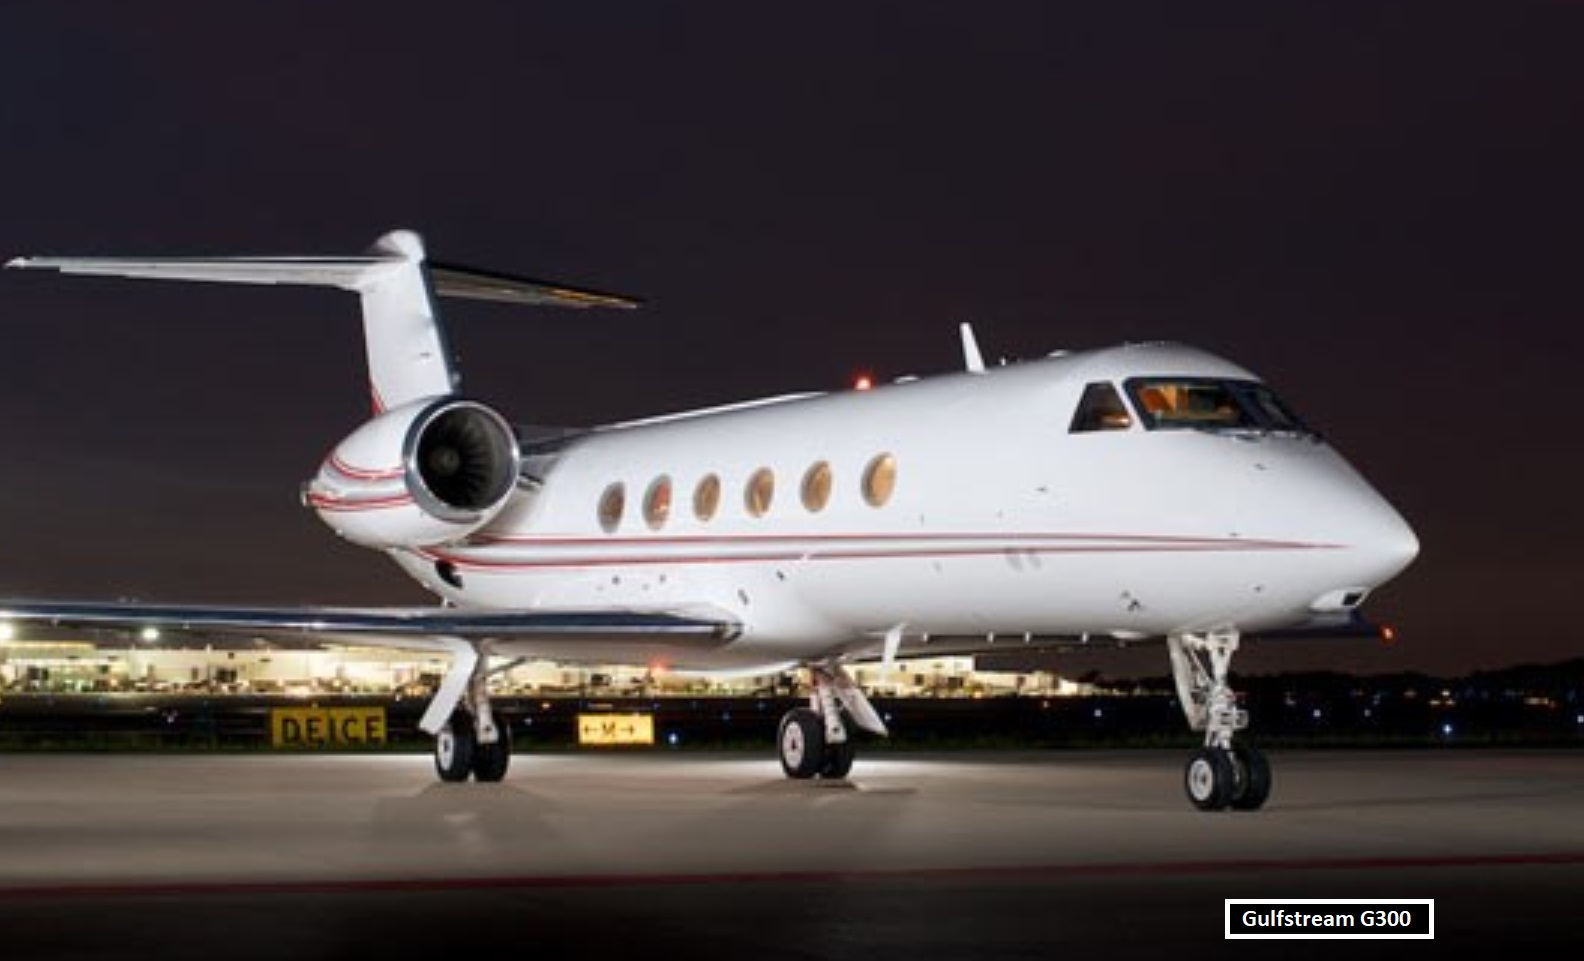 Footballers who own Expensive private jets Alexis Sanchez